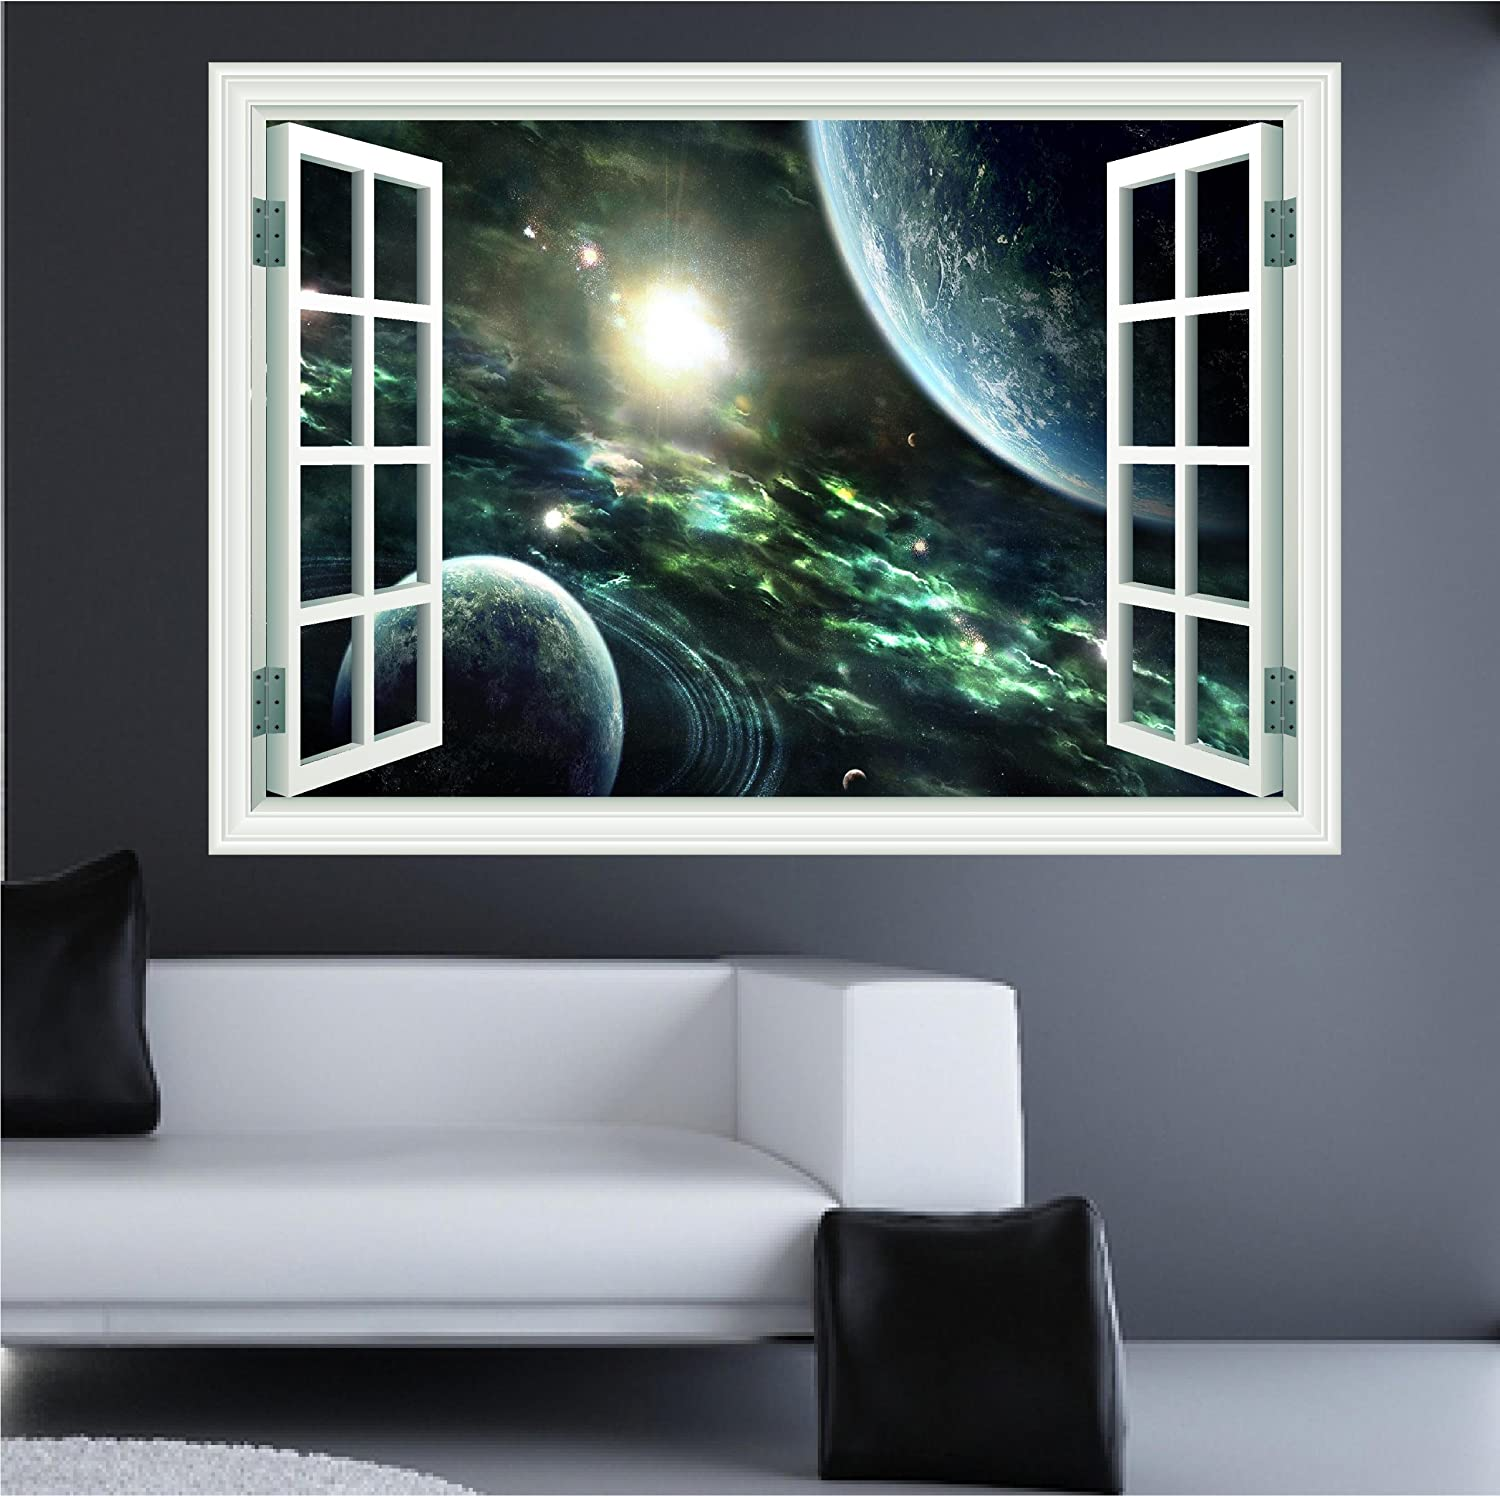 Huge D Space Window Wall Art Sticker Decal Amazoncouk Kitchen - Window stickers for home uk